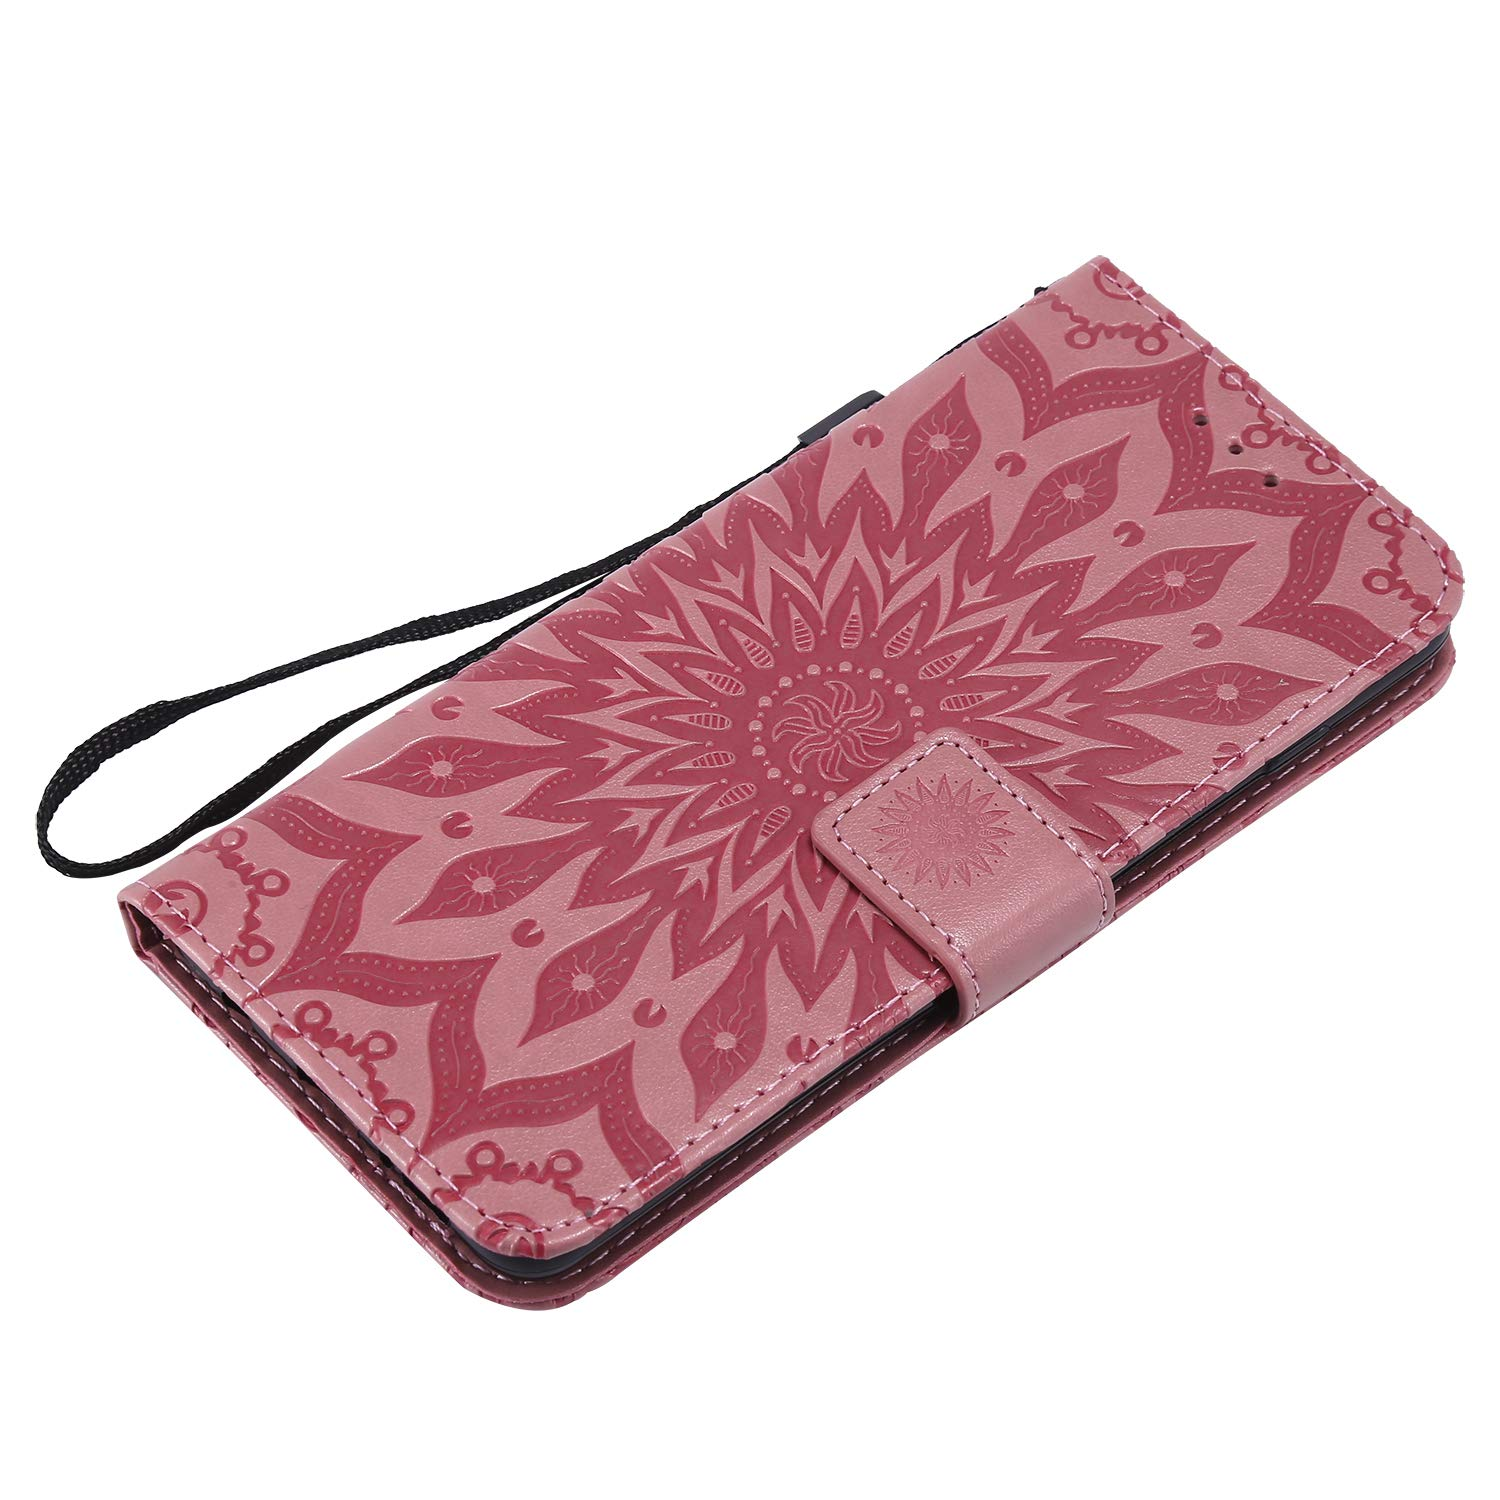 Galaxy S10 E Case,Samsung S10 E Case,Wallet Case,PU Leather Case Sun Flower Pattern Embossed Purse with Kickstand Flip Cover Card Holders Hand Strap for Samsung Galaxy S10 E Pink